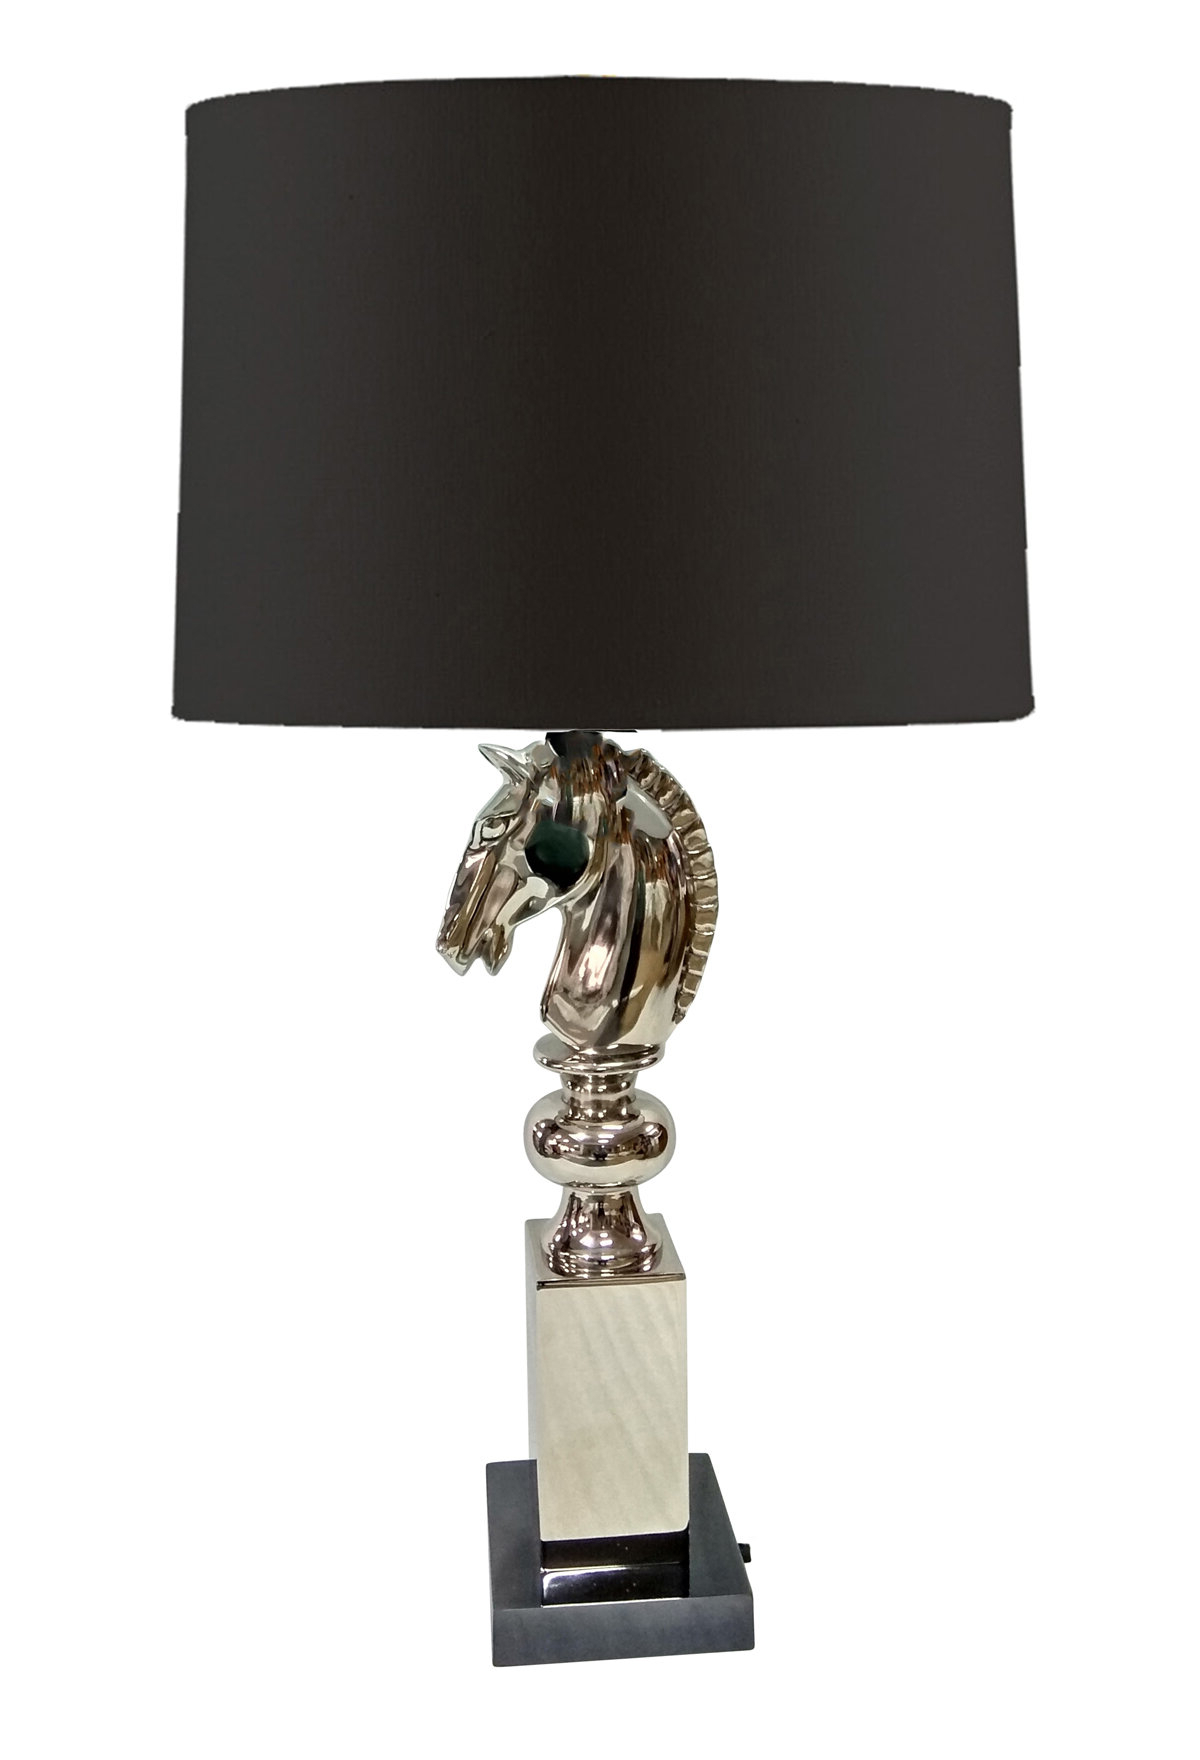 "Brubaker 31"" Table Lamp Regarding Widely Used Brubaker Market Umbrellas (View 3 of 20)"